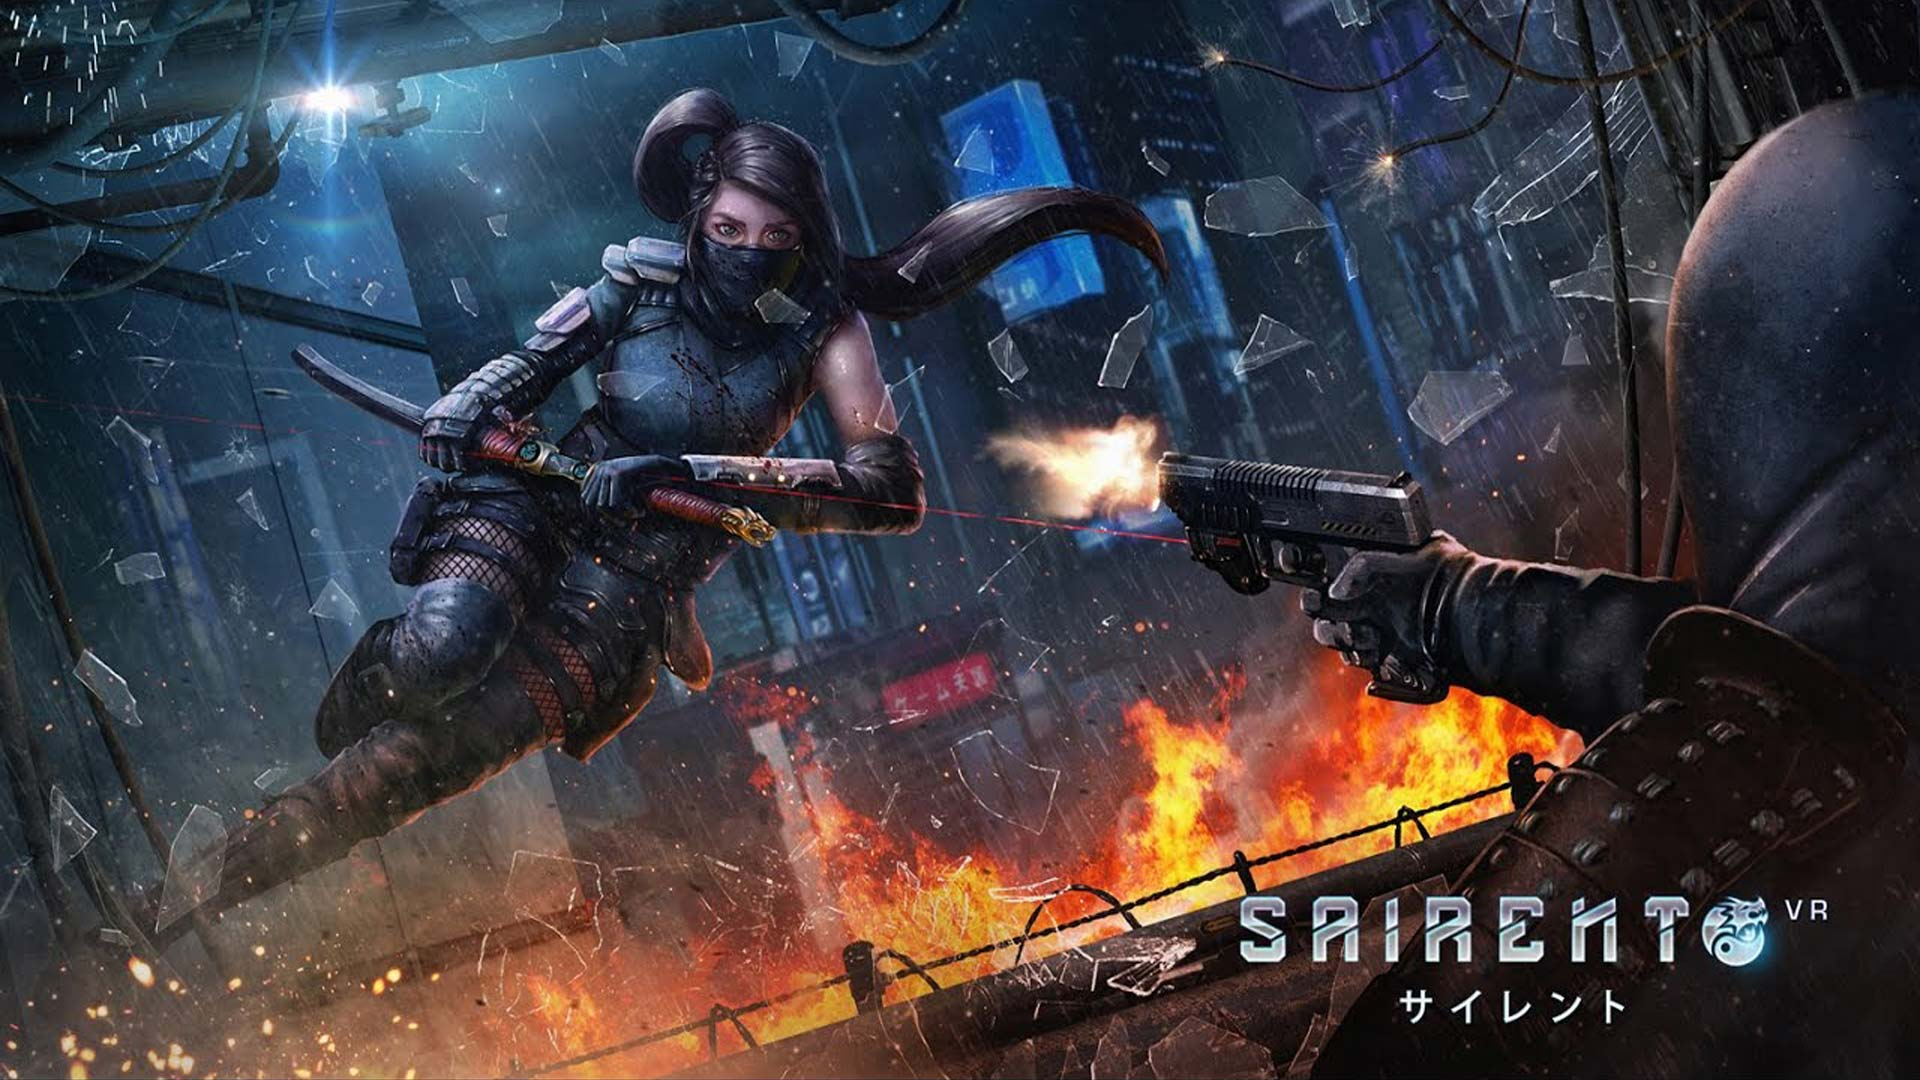 sairento_artwork